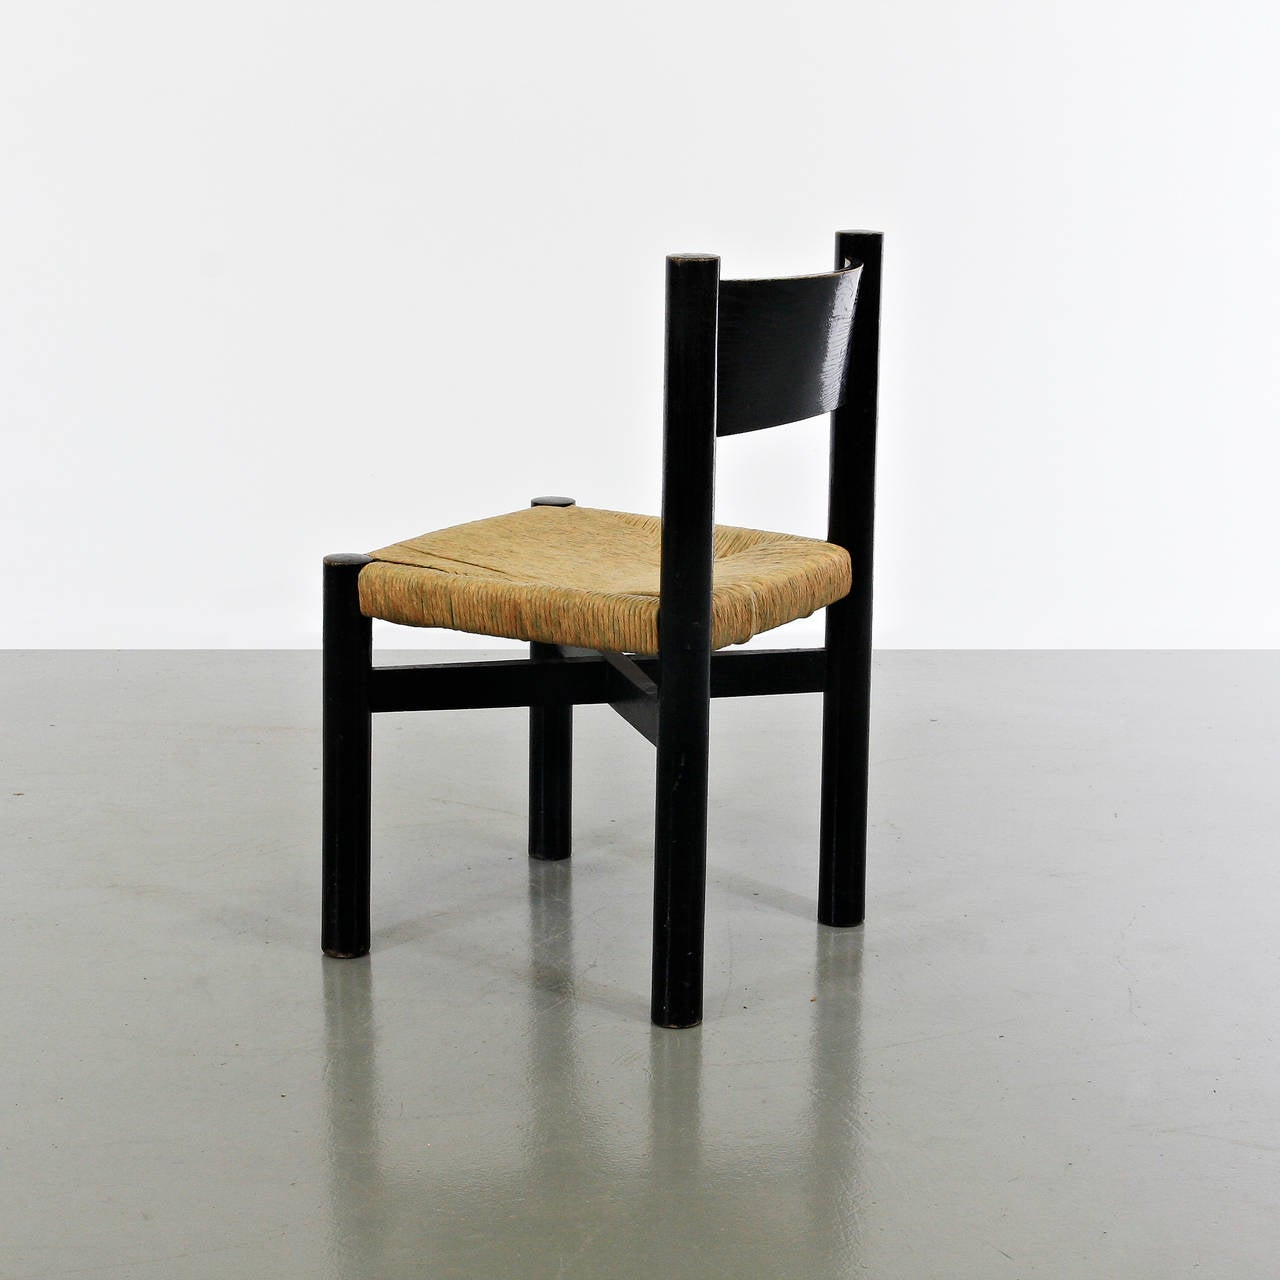 Dinning chair, model Meribel, designed by Charlotte Perriand, circa 1950.